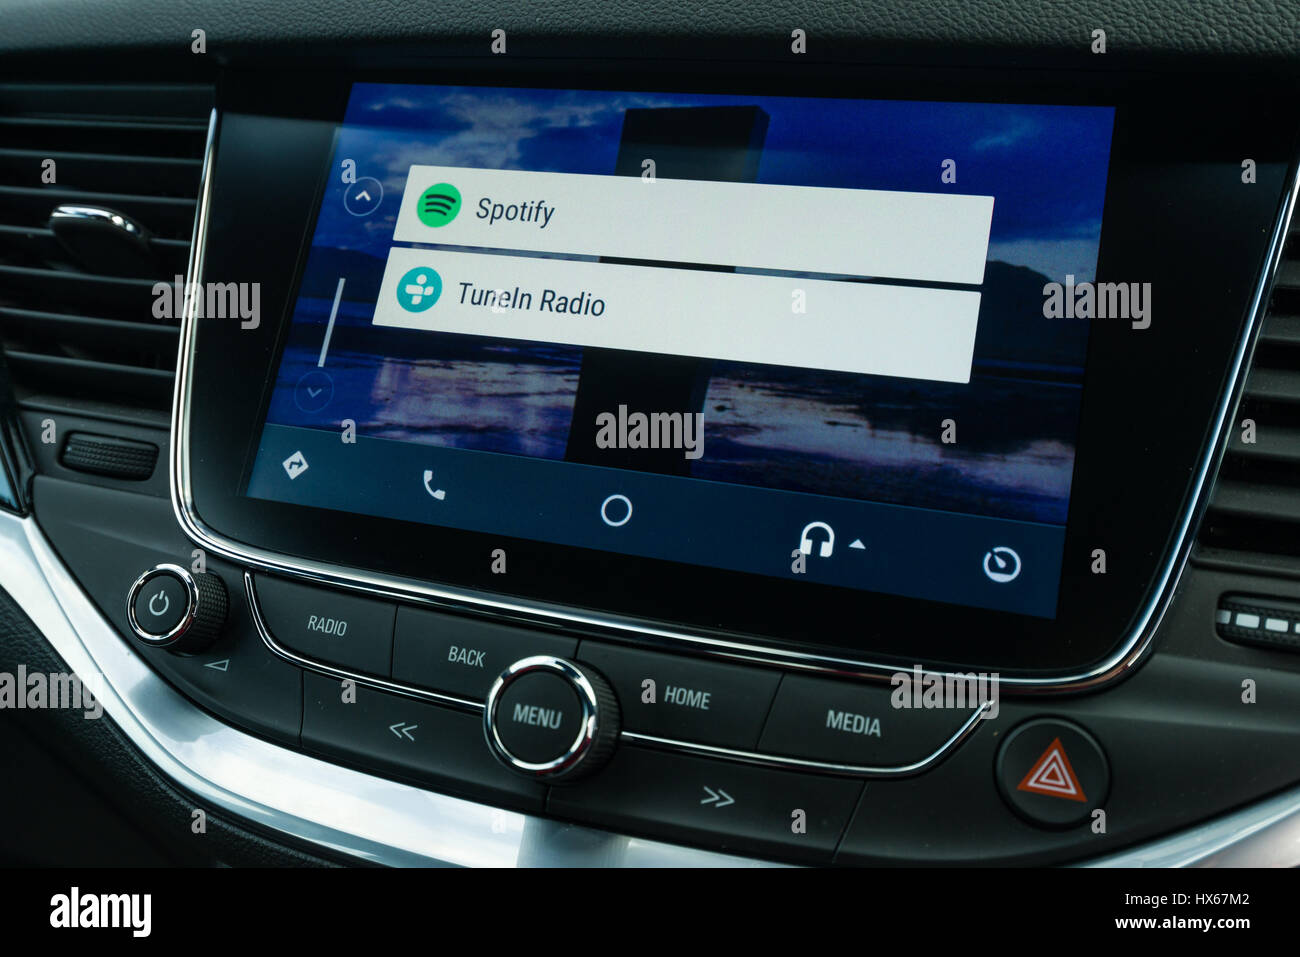 Android Auto Car Vehicle Navigation Interface Music App Options - Stock Image